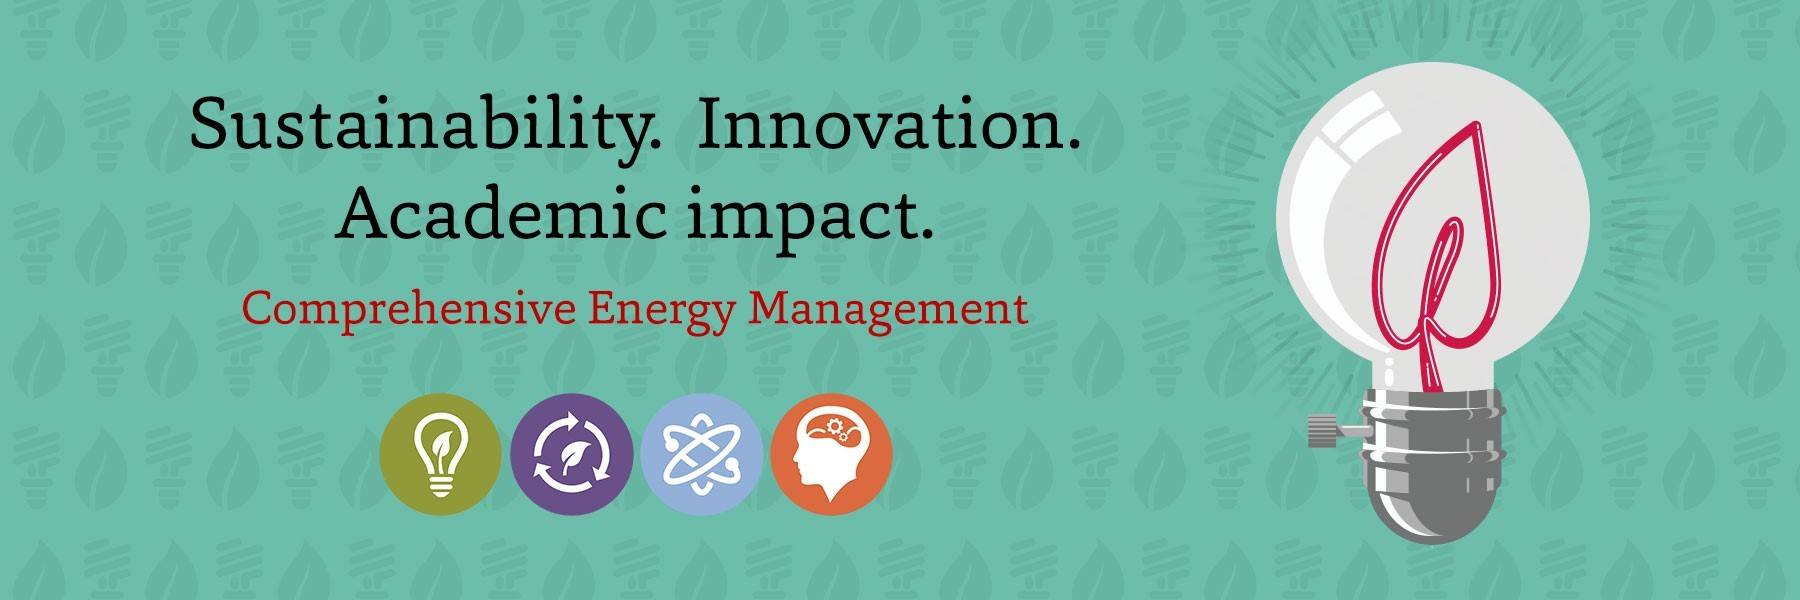 Comprehensive Energy Management Project - sustainability - innovation - academic impact